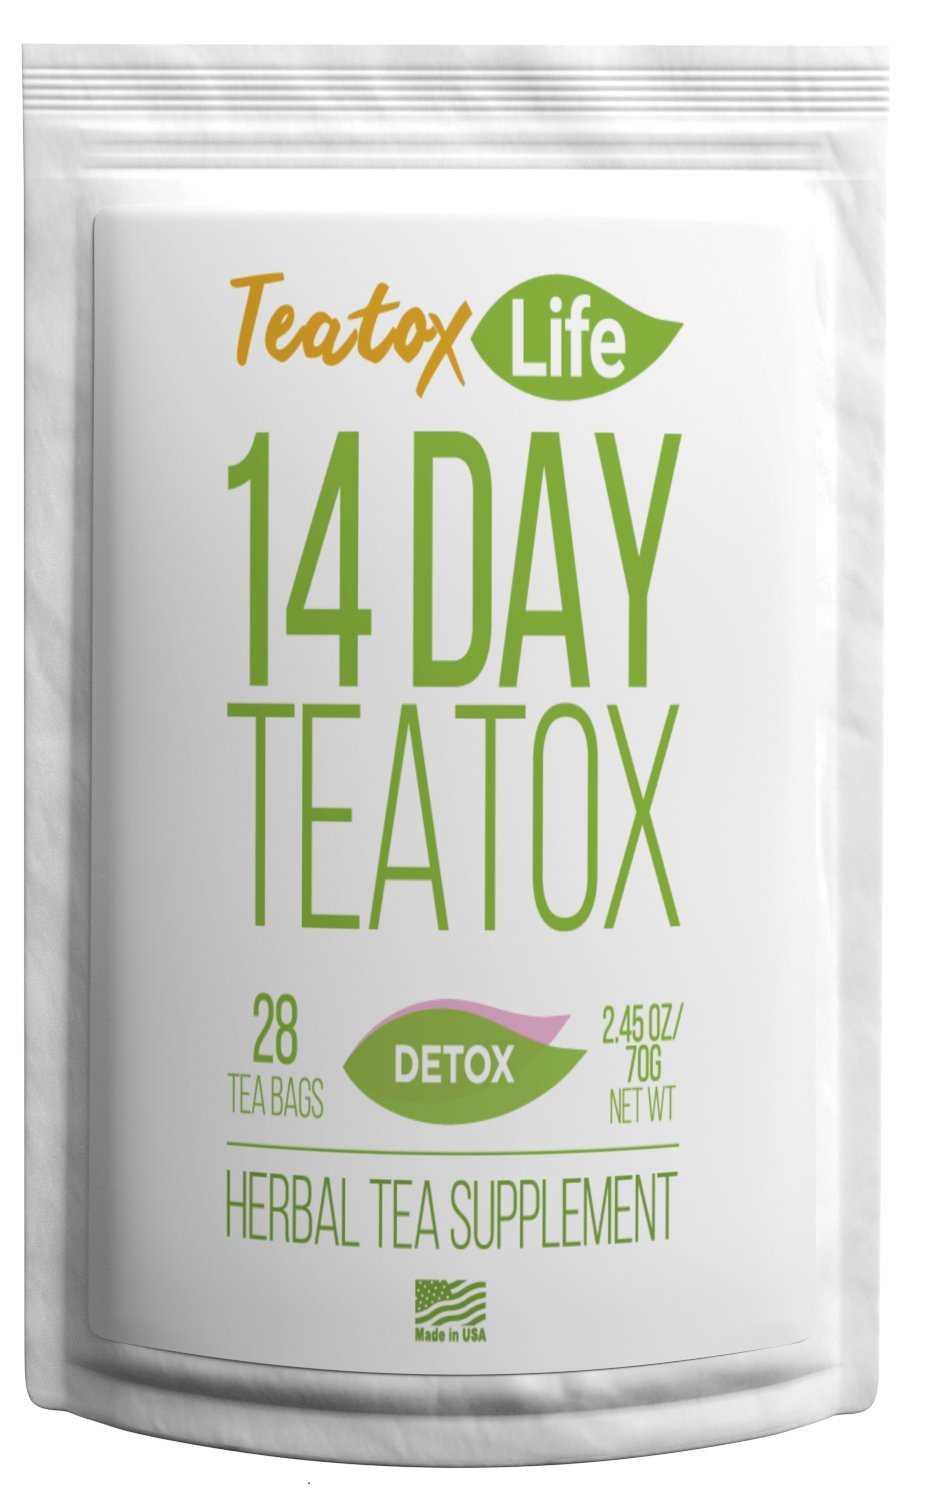 skinny mint teatox 28 14 day tea for flat tummy detox cleanse weight loss 28 herbal tea bags. Black Bedroom Furniture Sets. Home Design Ideas